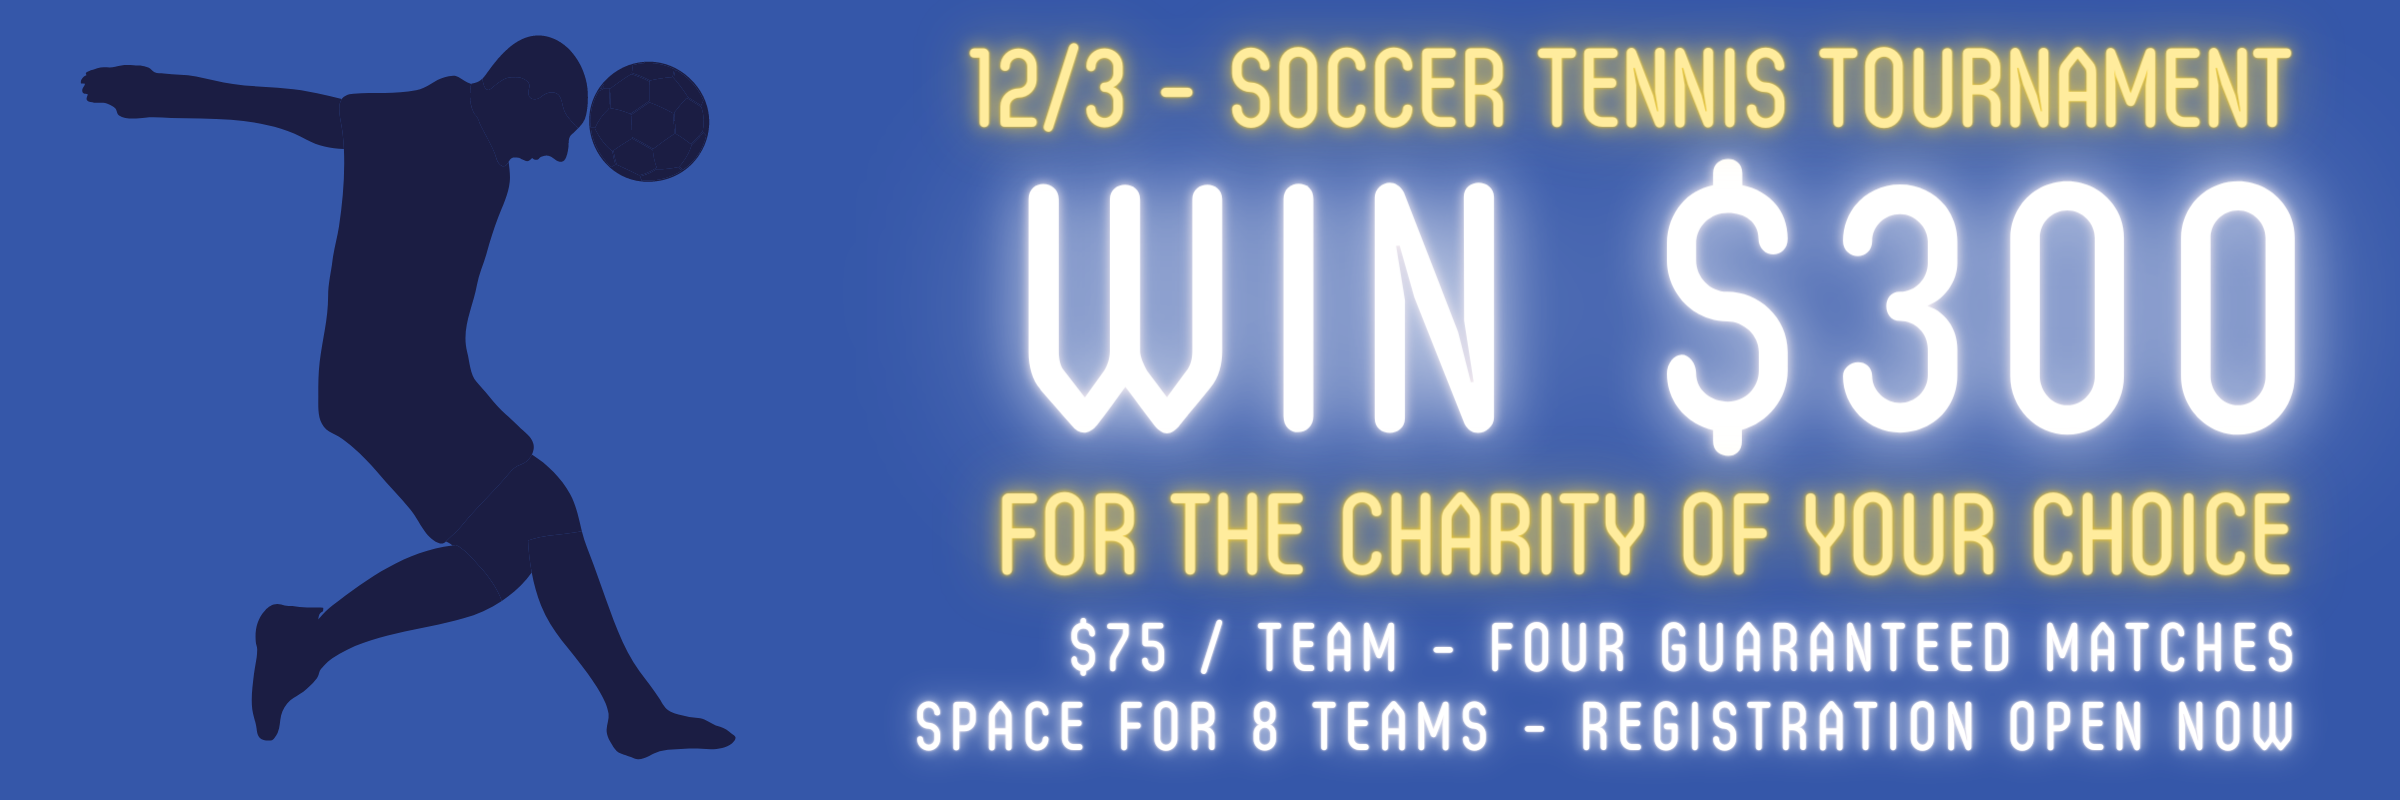 2v2 Soccer Tennis Tournament – Win $300 for Charity!